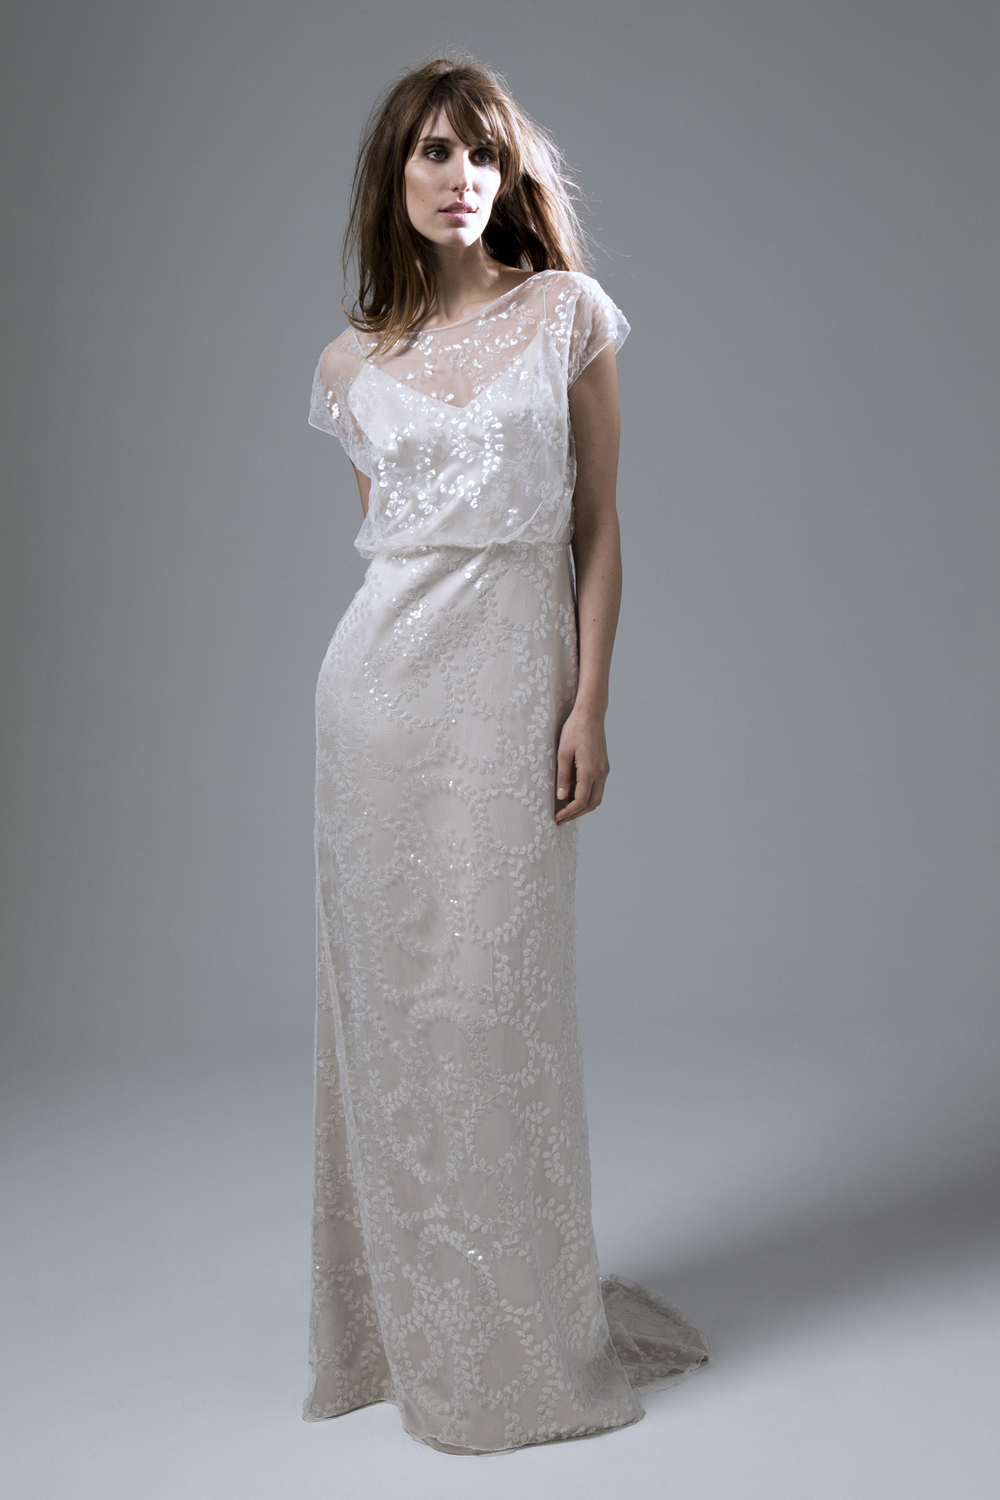 LYDIA SEQUIN BLUSH SLASH NECK DRESS WITH PUDDLE TRAIN WEDDING DRESS BY HALFPENNY LONDON